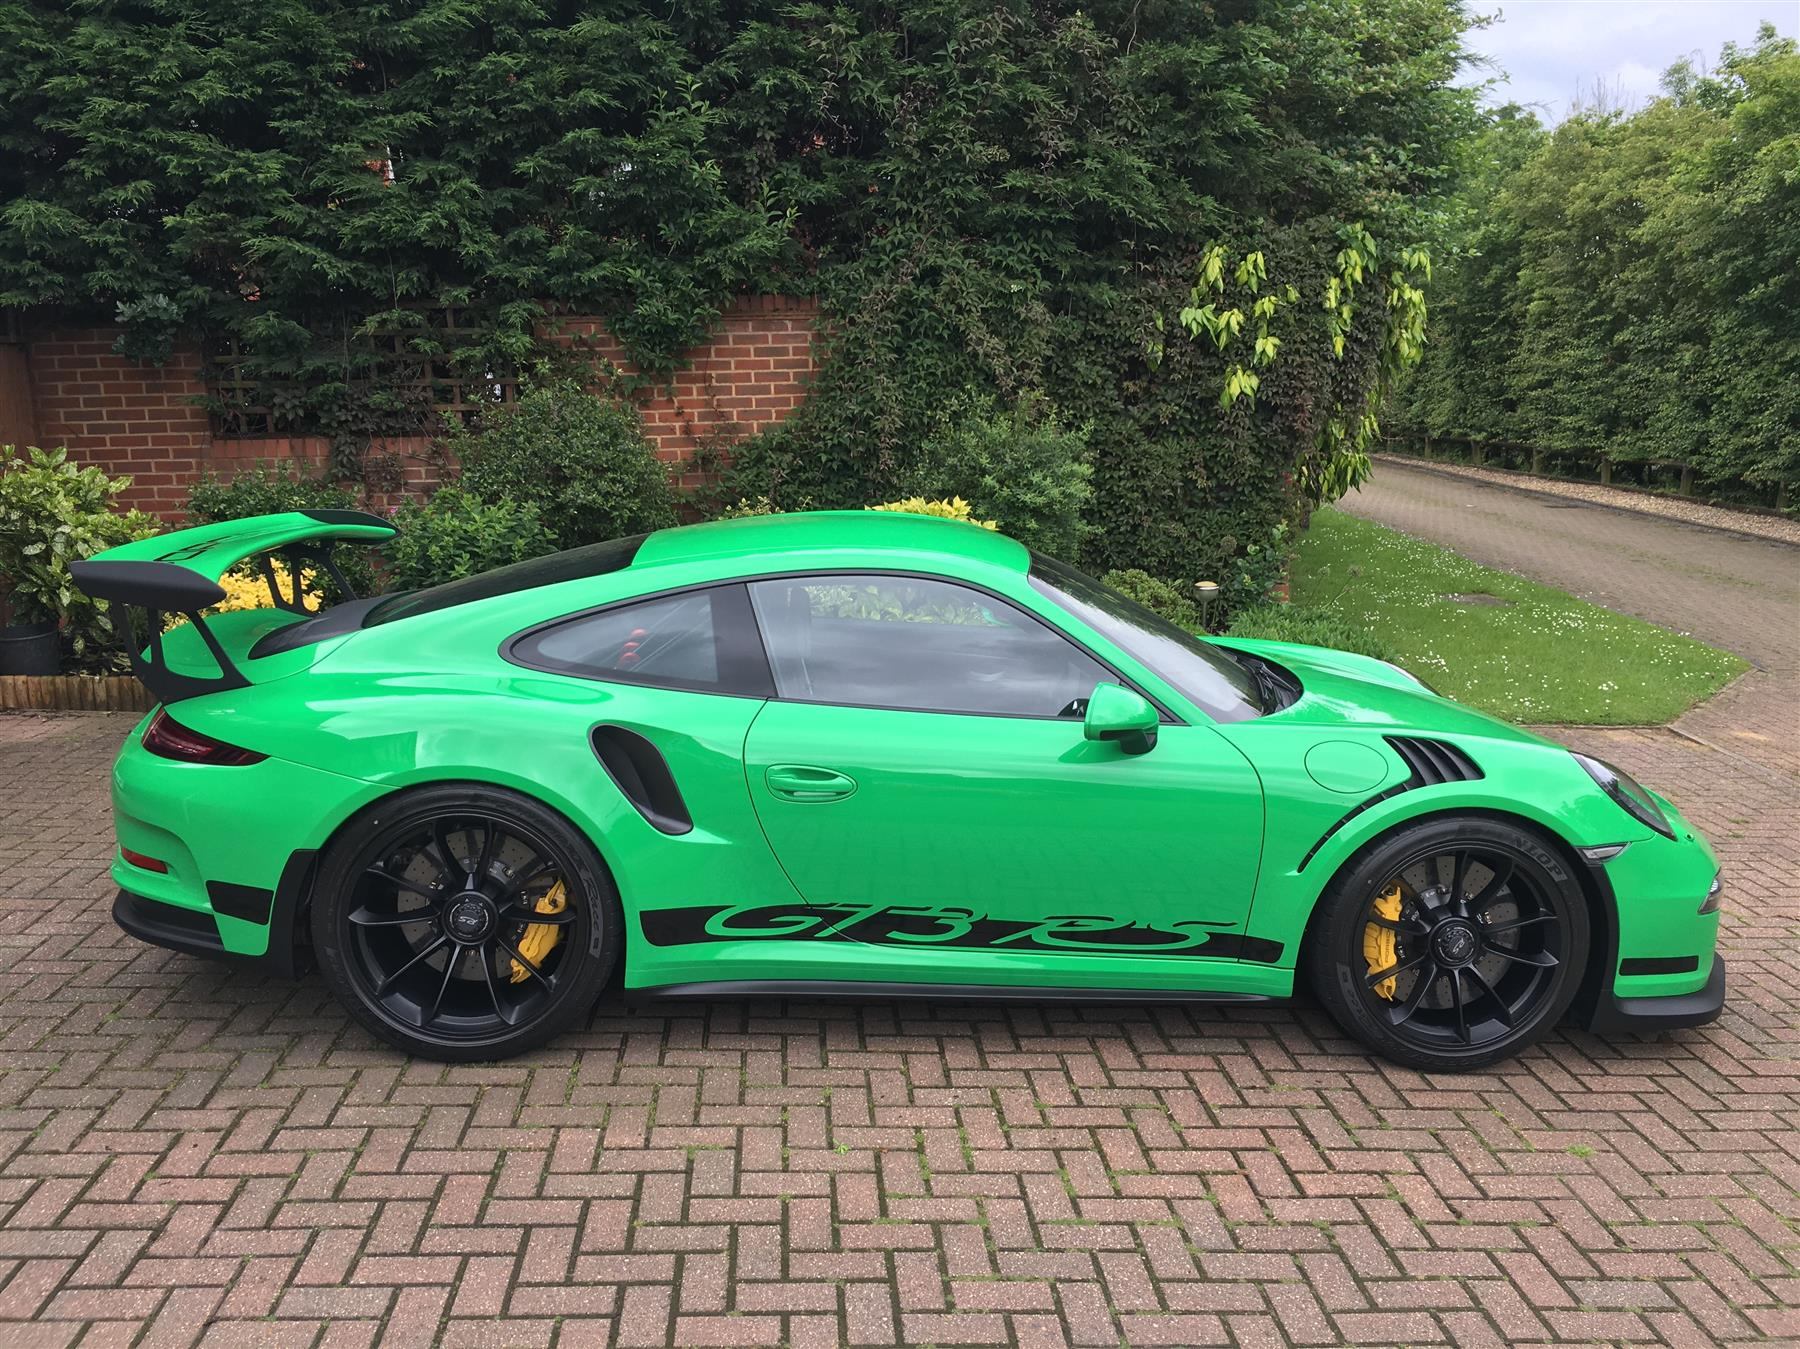 2016 RS Green Porsche 911 GT3 RS for Sale at $321,000 in ...